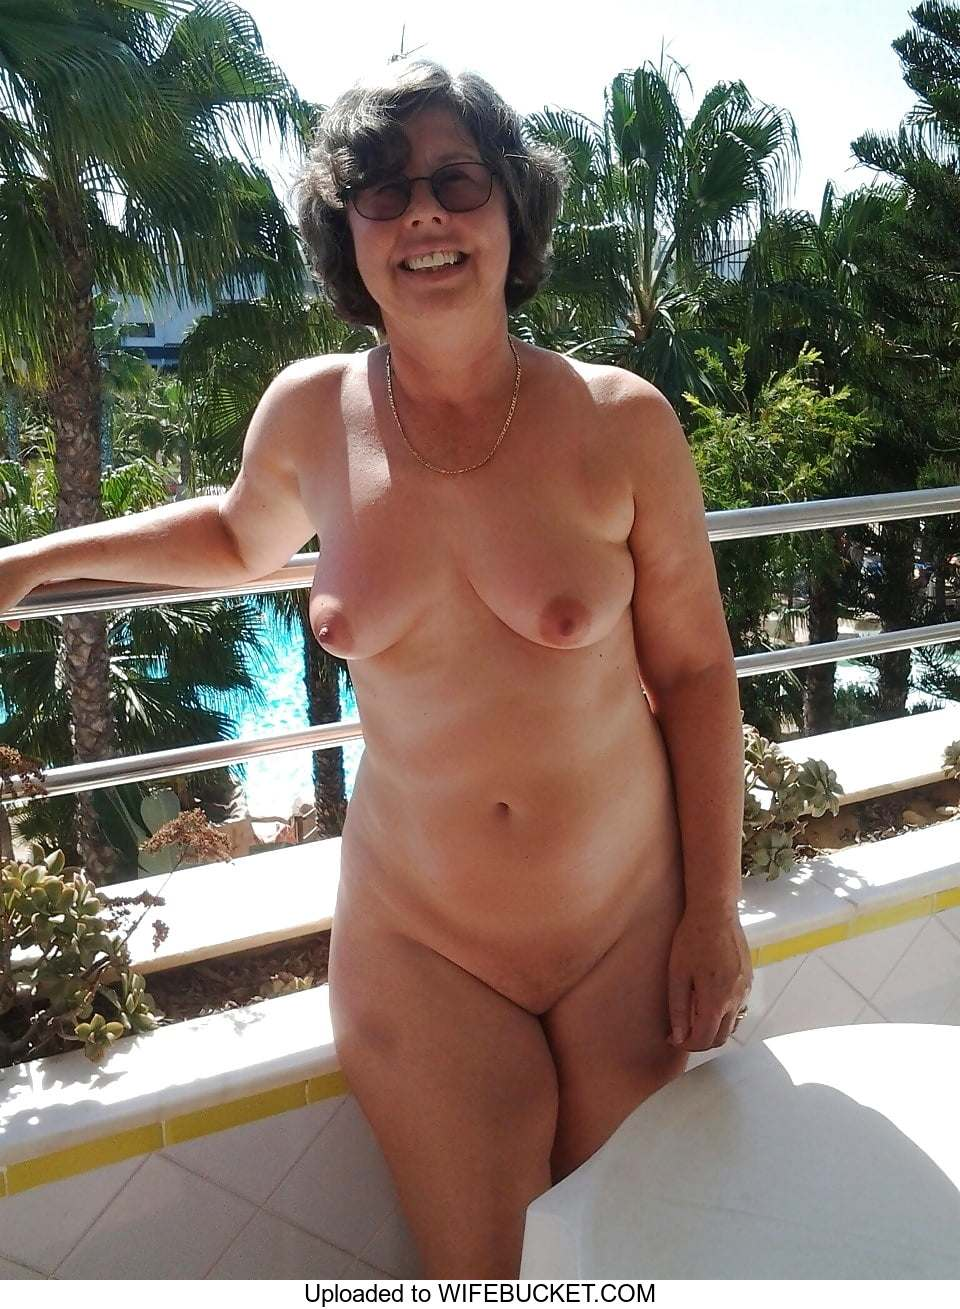 Mixed Photos Of Their Wives Naked And Exposed  Wifebucket -4481